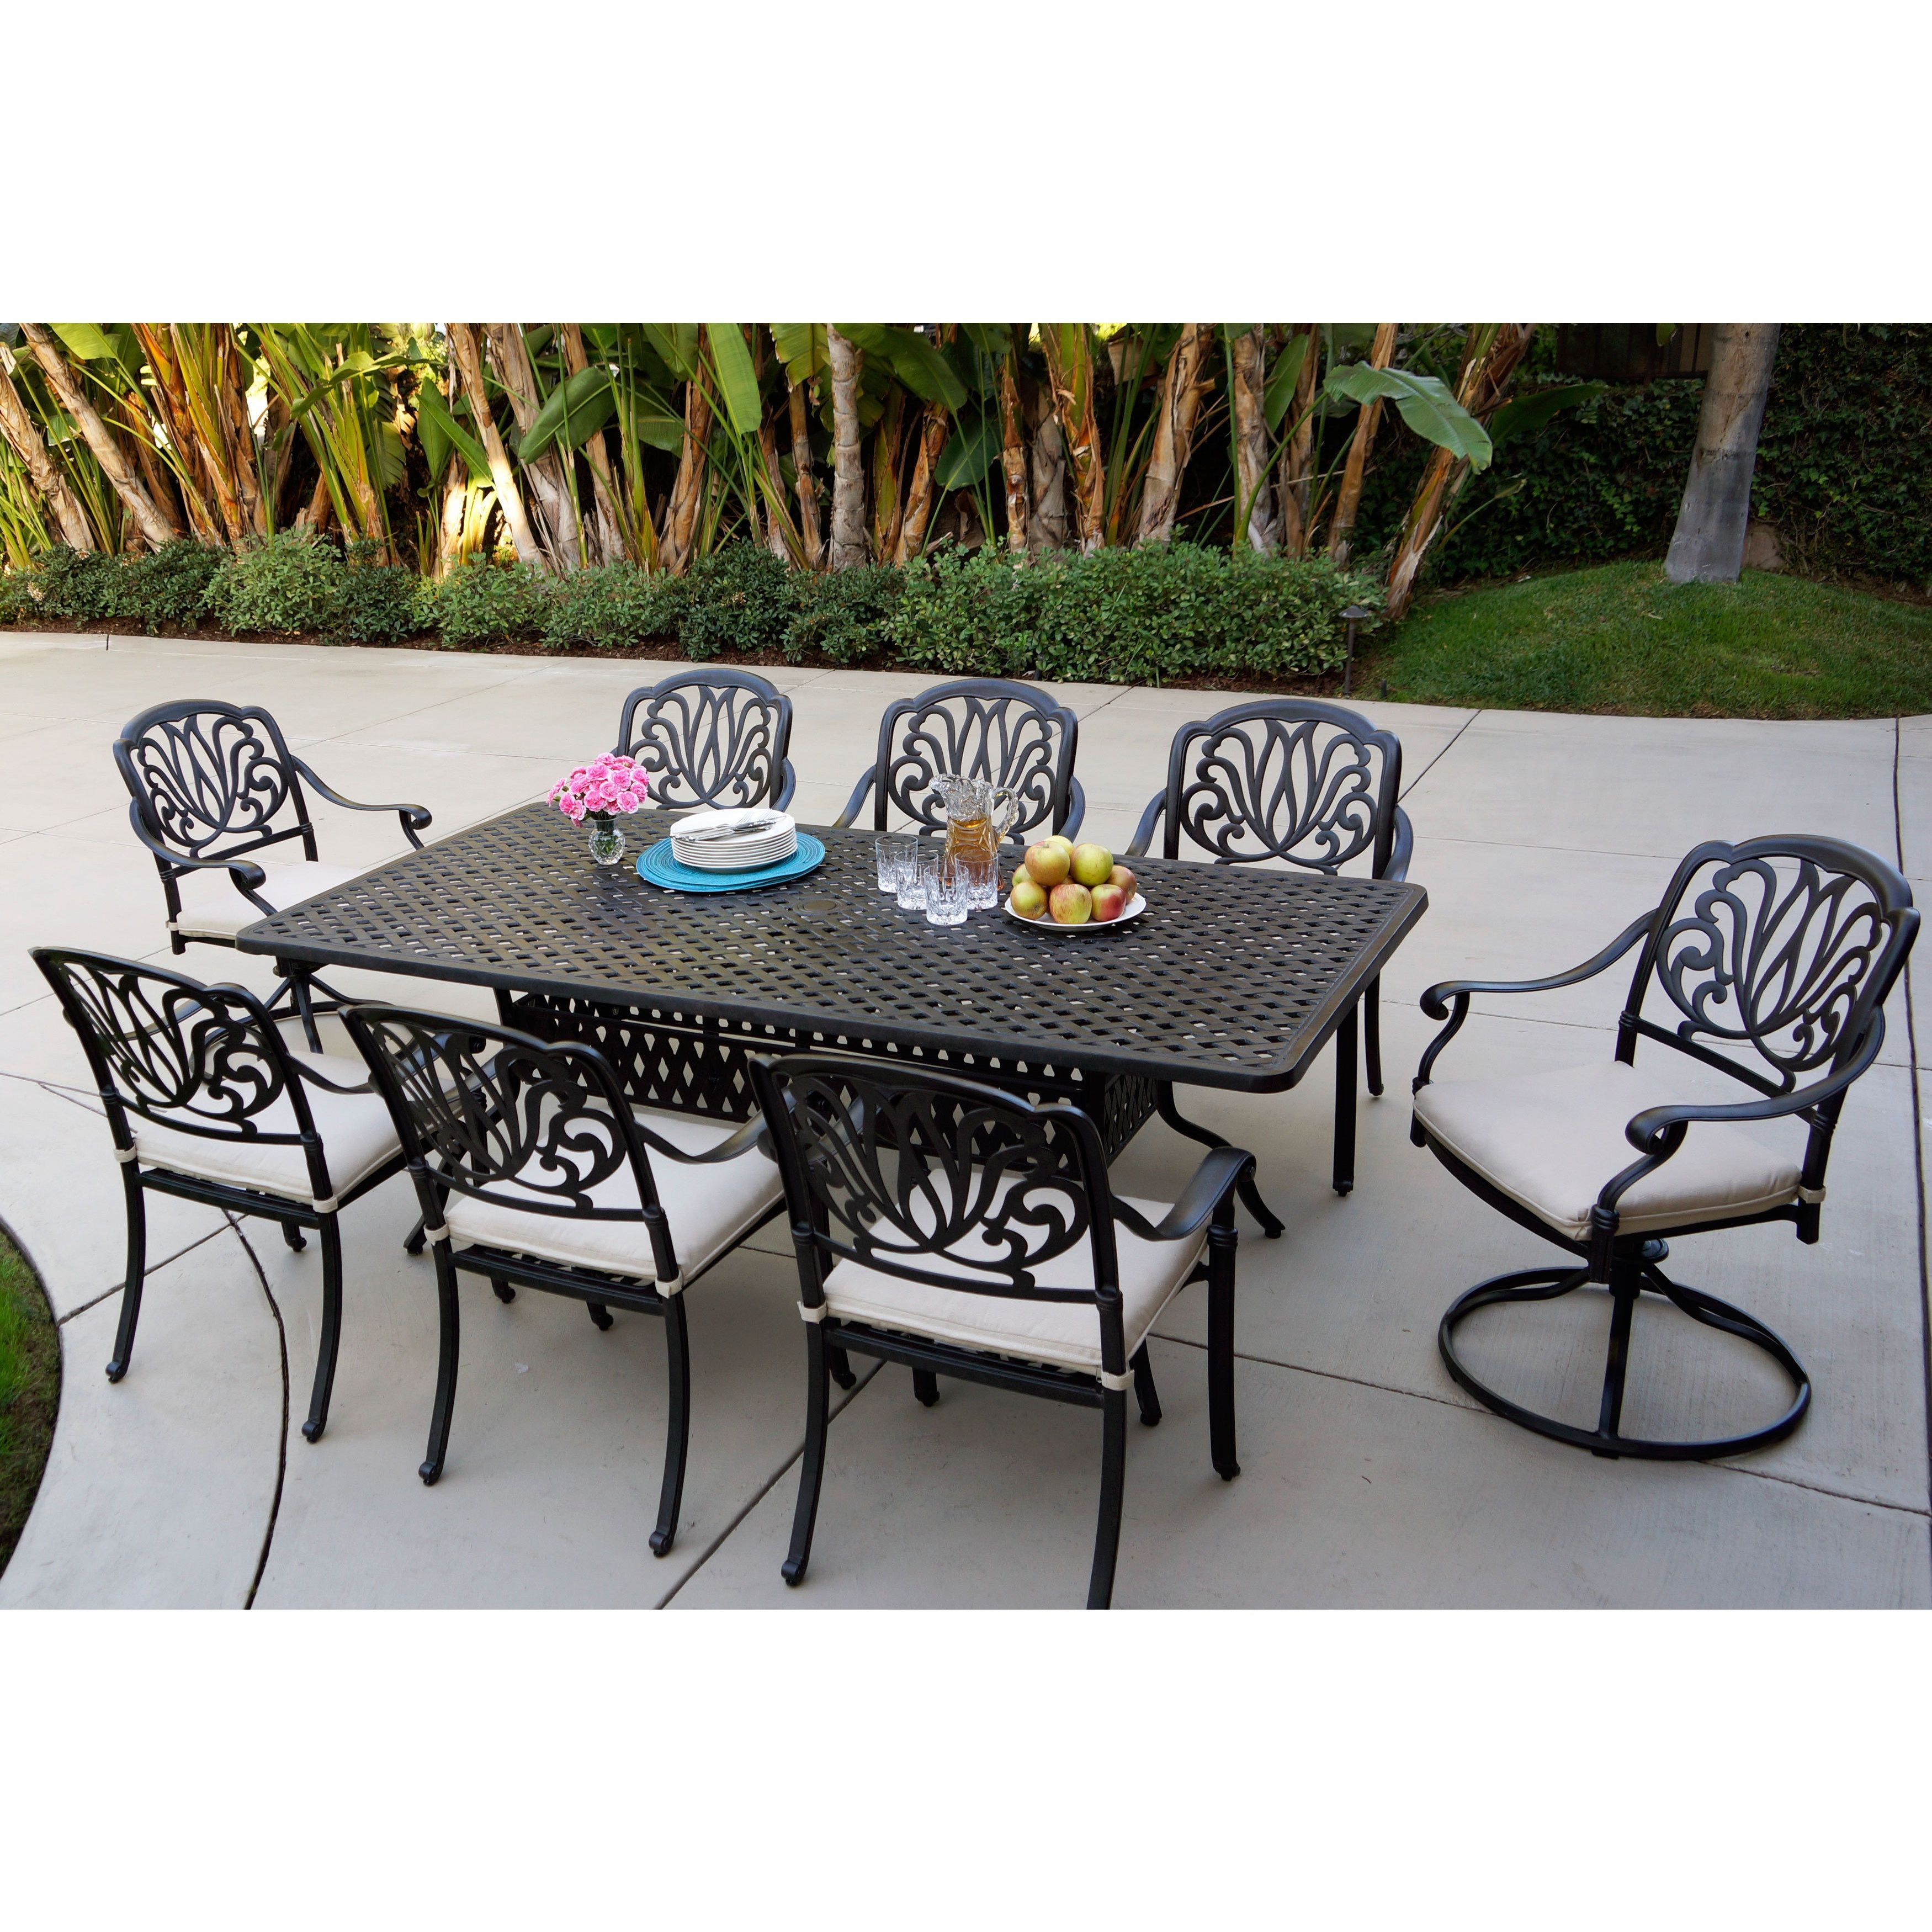 Sicily Antique Bronze 9 Piece Outdoor Dining Set with Seat